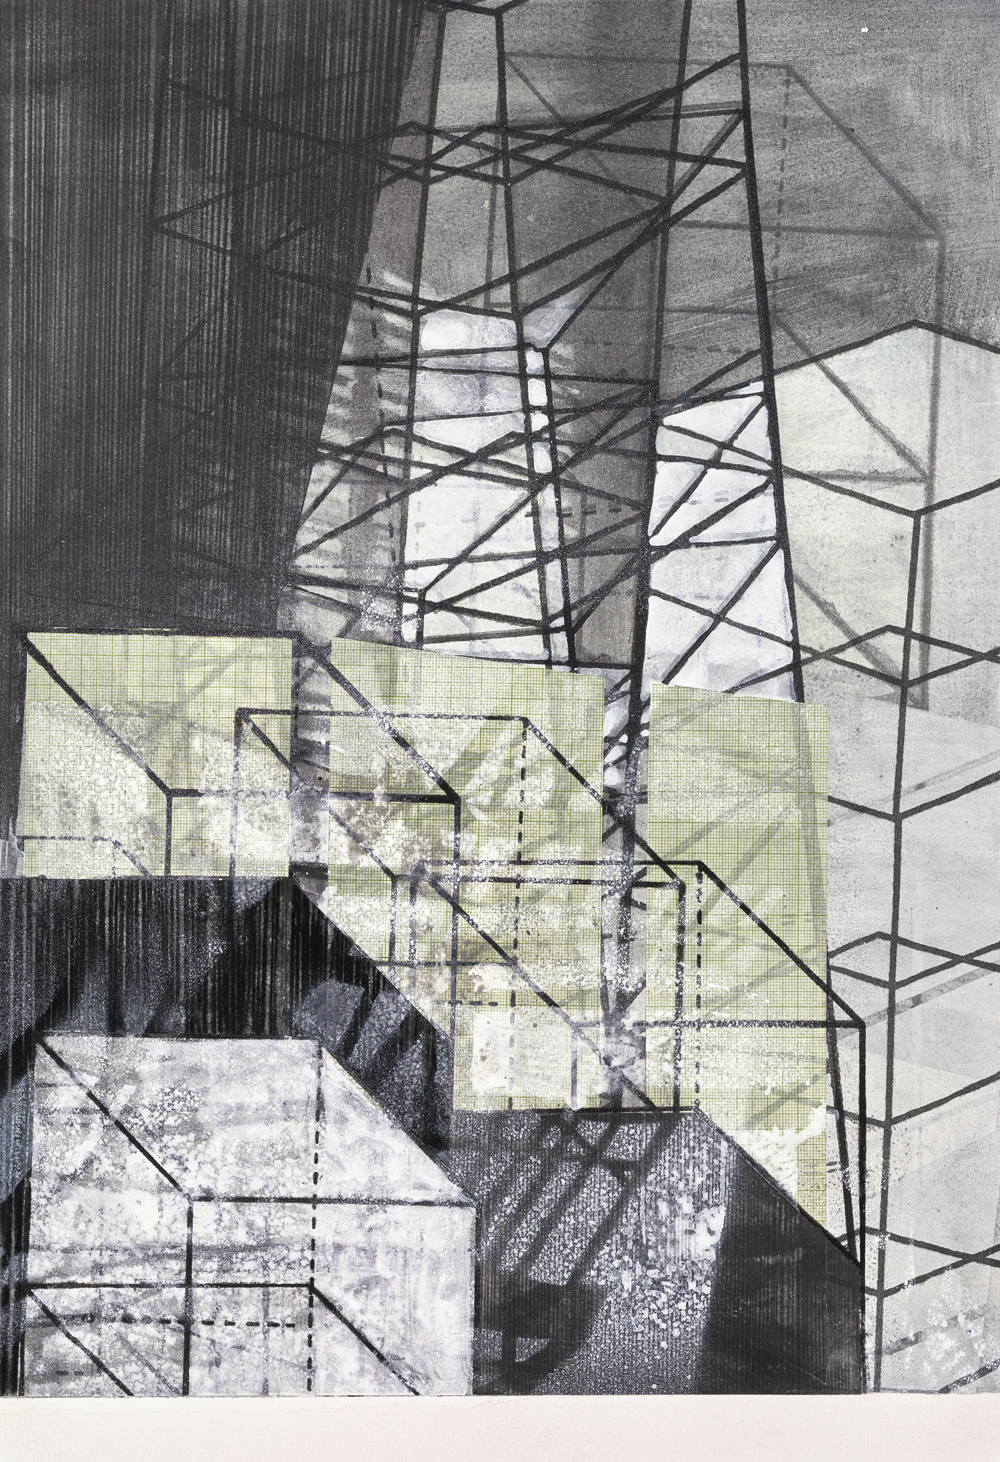 Amanda Knowles, Untitled (Built Environment) II, 2017, screen print, graphite + acrylic on paper, 19 x 13 inches, $800.